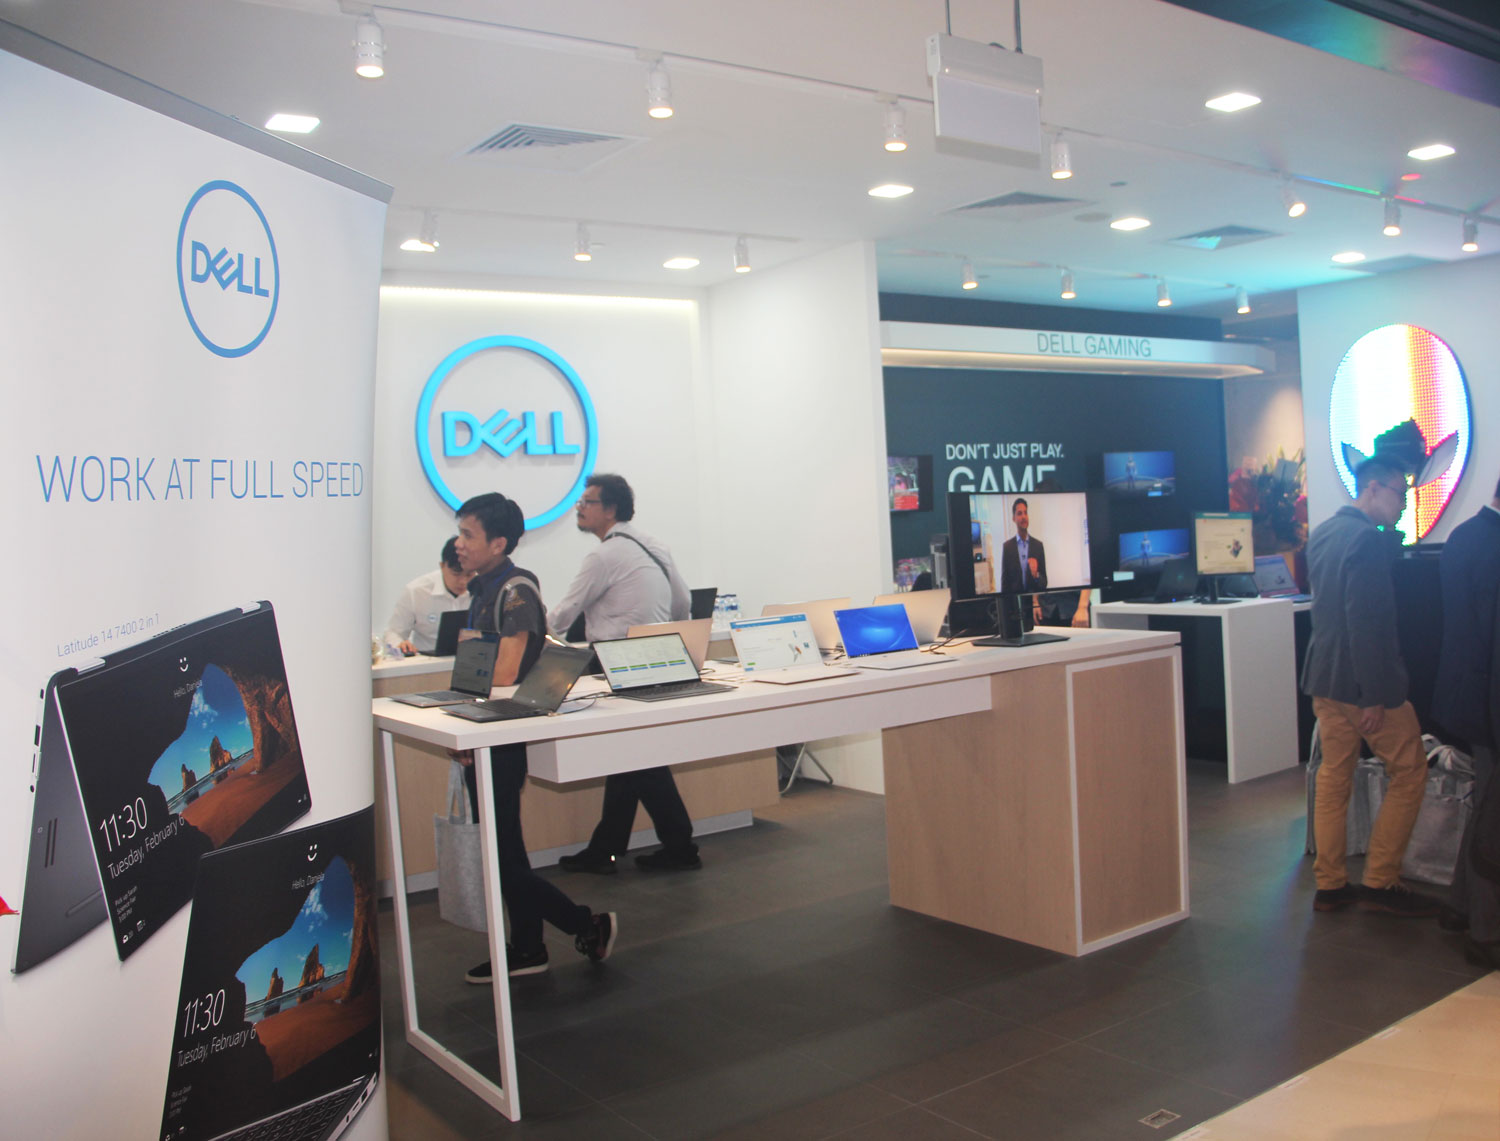 New Dell store opening at Funan mall